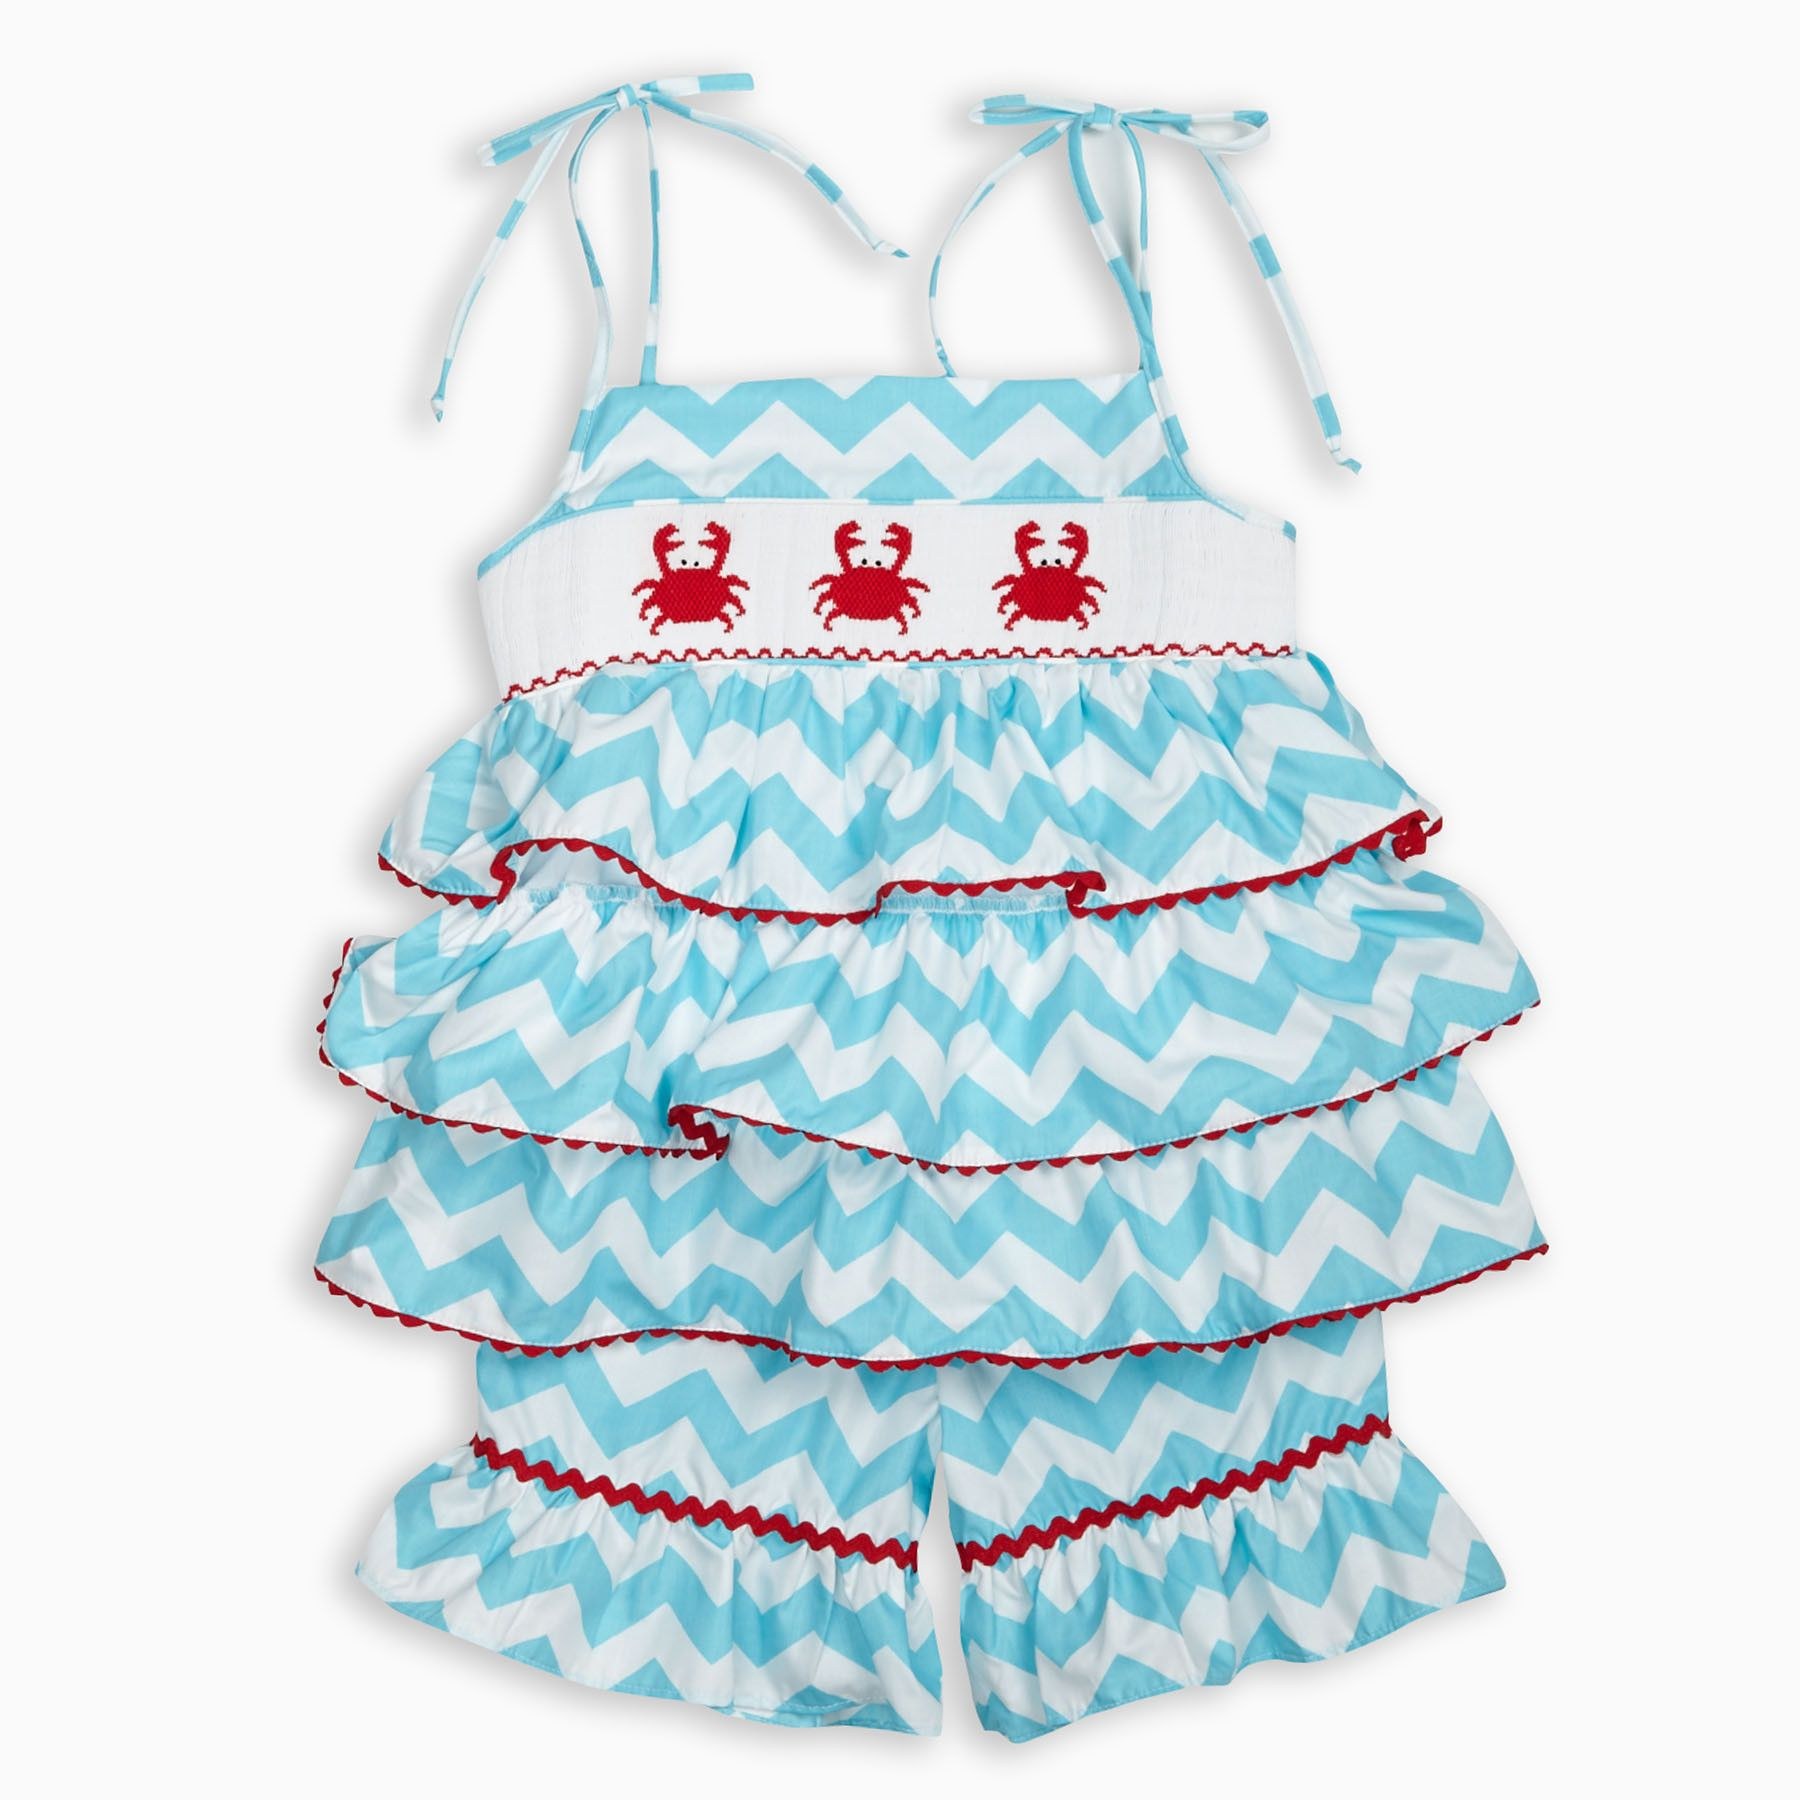 Dress code baby pink  Swoon Love this Turquoise Chevron Crab Smock Ruffle Short Set I